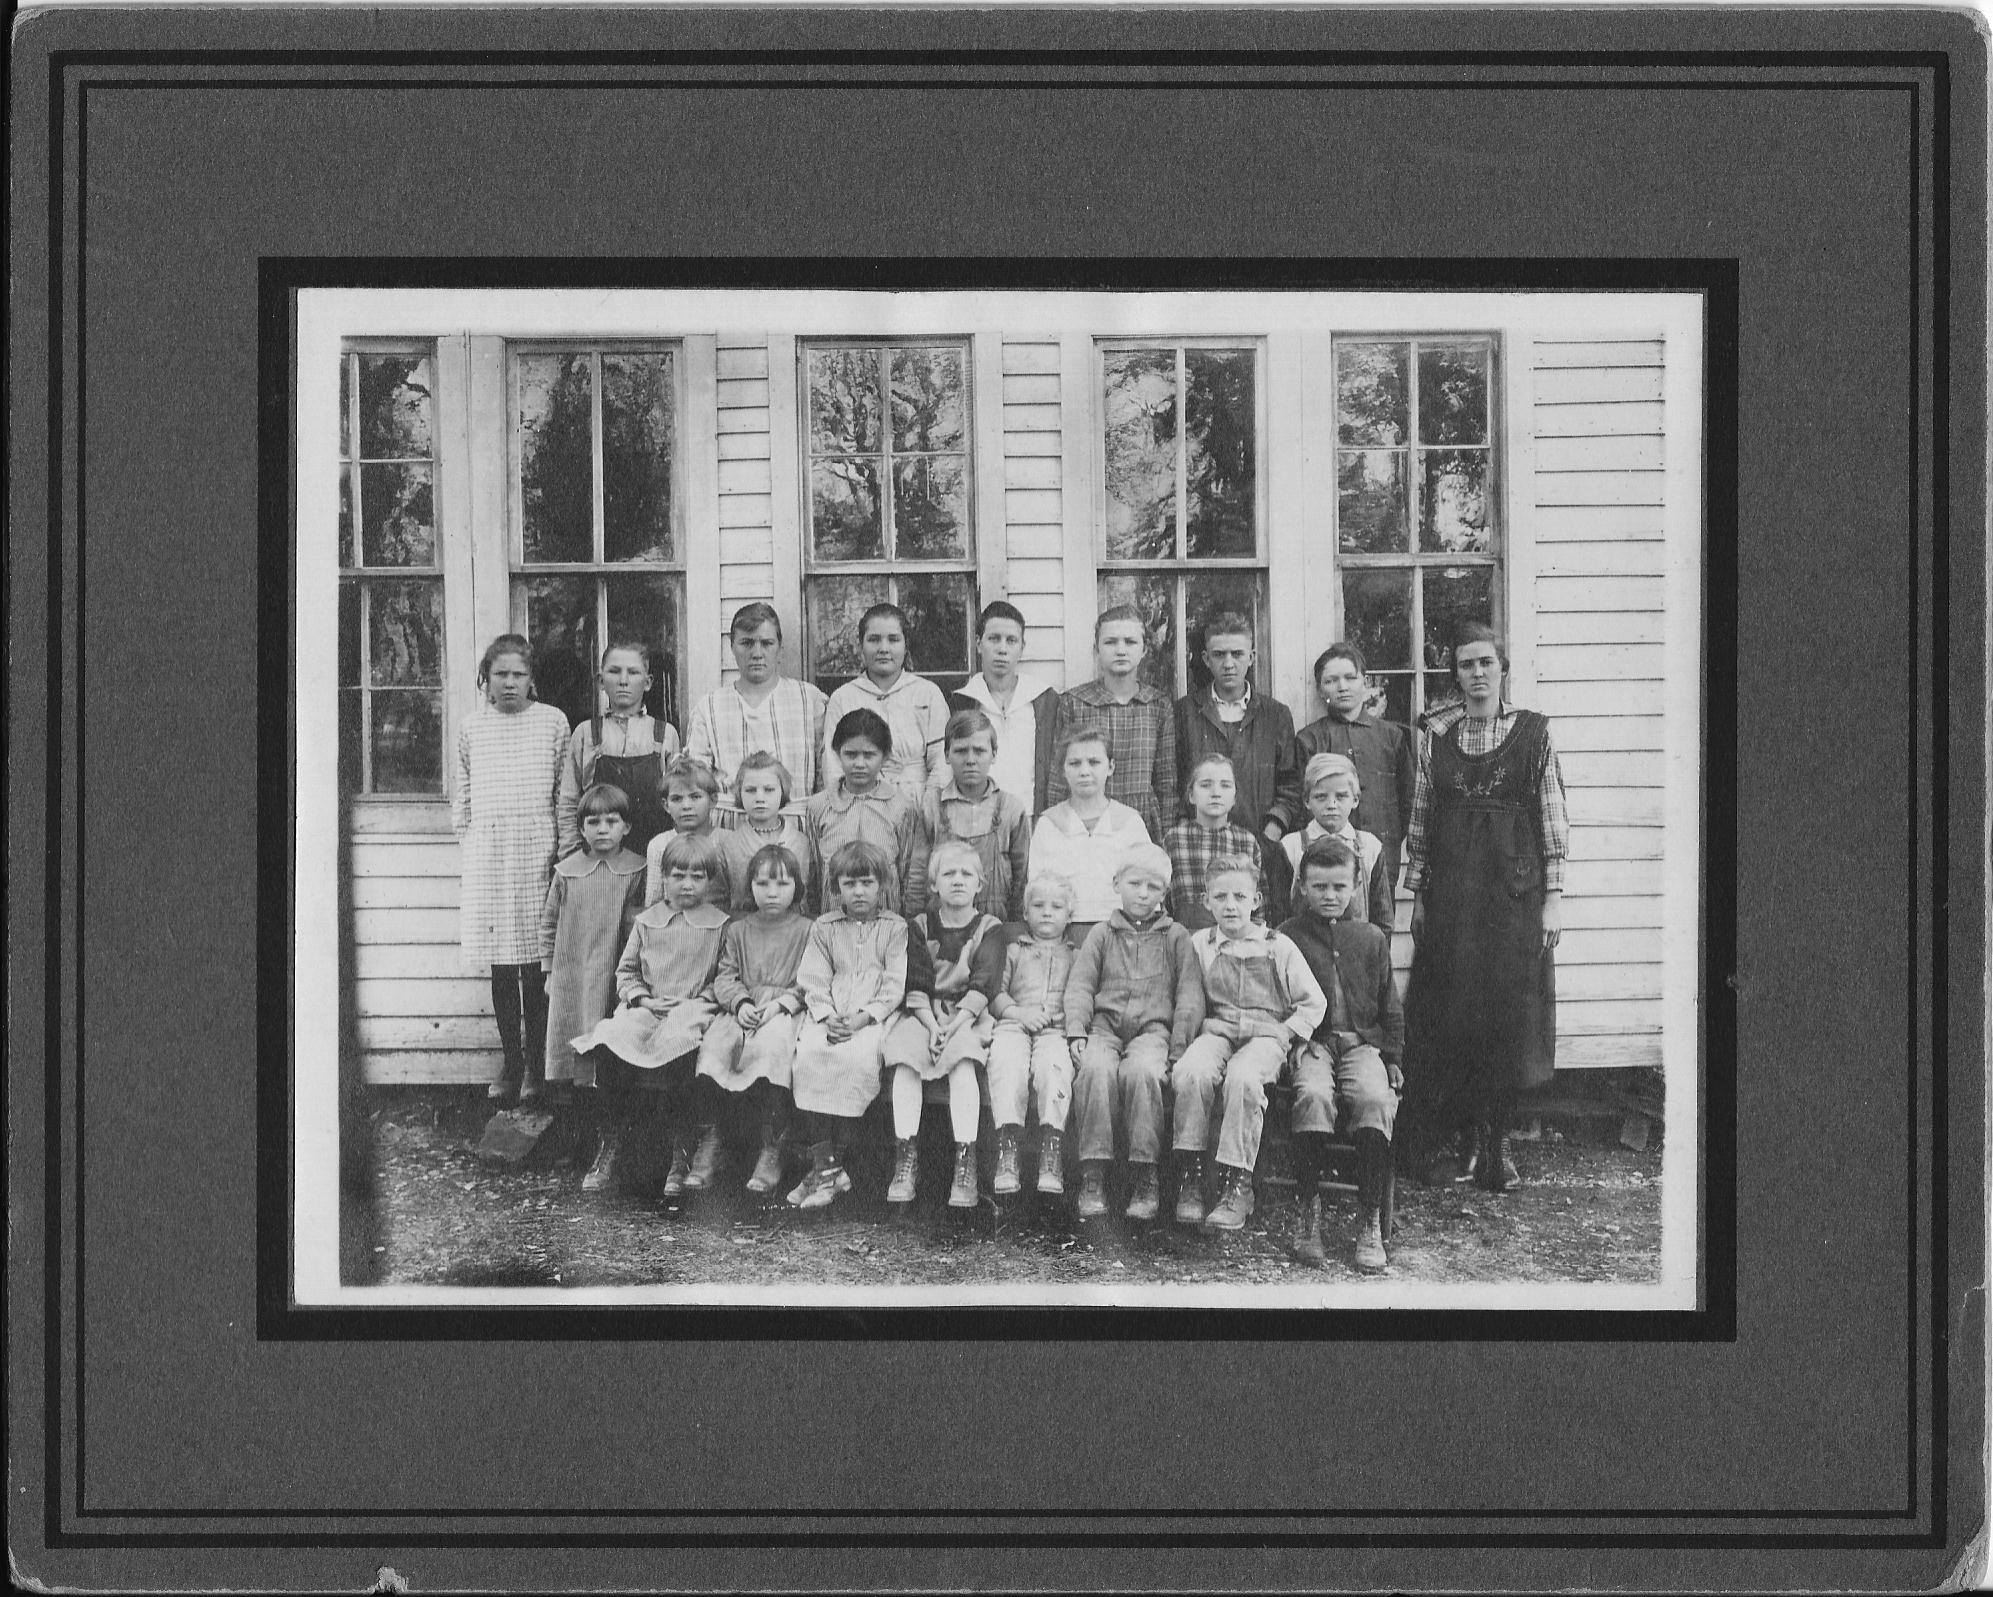 Top row: Mildred Gann, Garret Boyd, Dorothy Gann, Virgie Gann, Sylvia Granes, Pearl Gann, Fred Gann, Herbert Gann, and teacher, Minnie Pinkley. 2nd row: Elmerine Gann, Linna Gann (twin of Lonnie), Gladys Gann, ?? Pinkley, Dalton Gann, Wilma Gann, Vera Gann, Virgil Gann. Bottom row: Margarine Gann, Daisy Gann, ? Pinkley, Ethel Boyd, Cecil Gann, Ralph Gann, Lonnie Gann, ?? Pinkley.